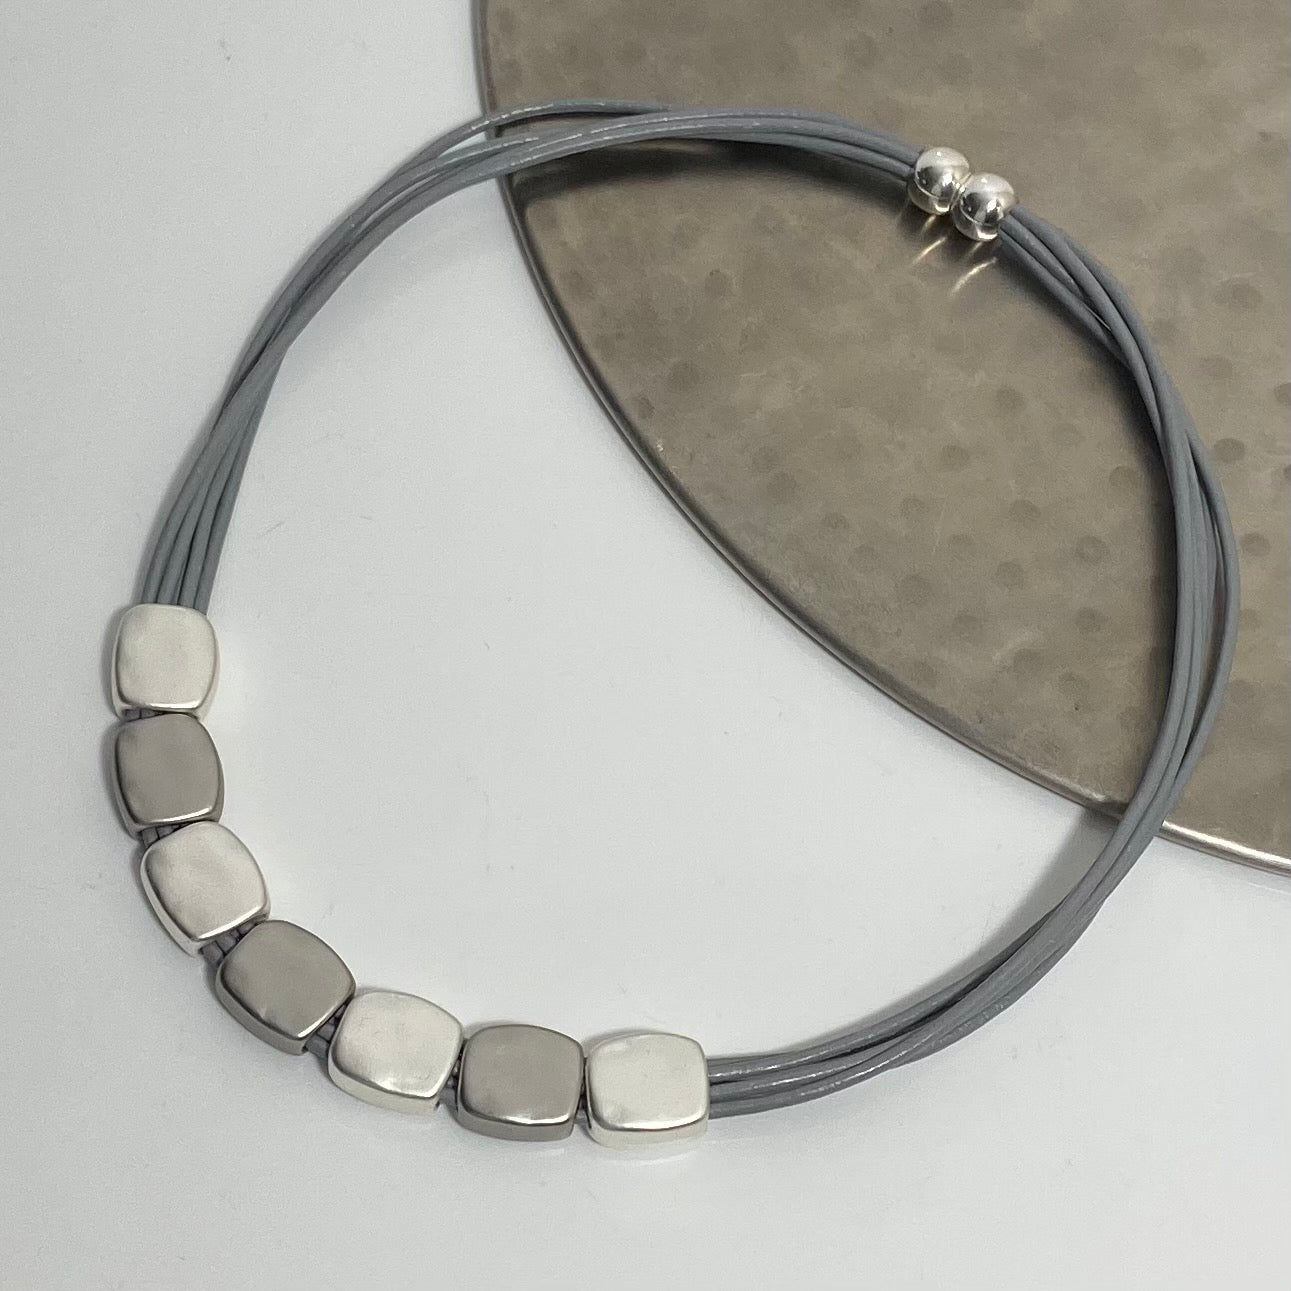 Short necklace, with grey and silver tone nuggets with a magnetic clasp on grey leather strands